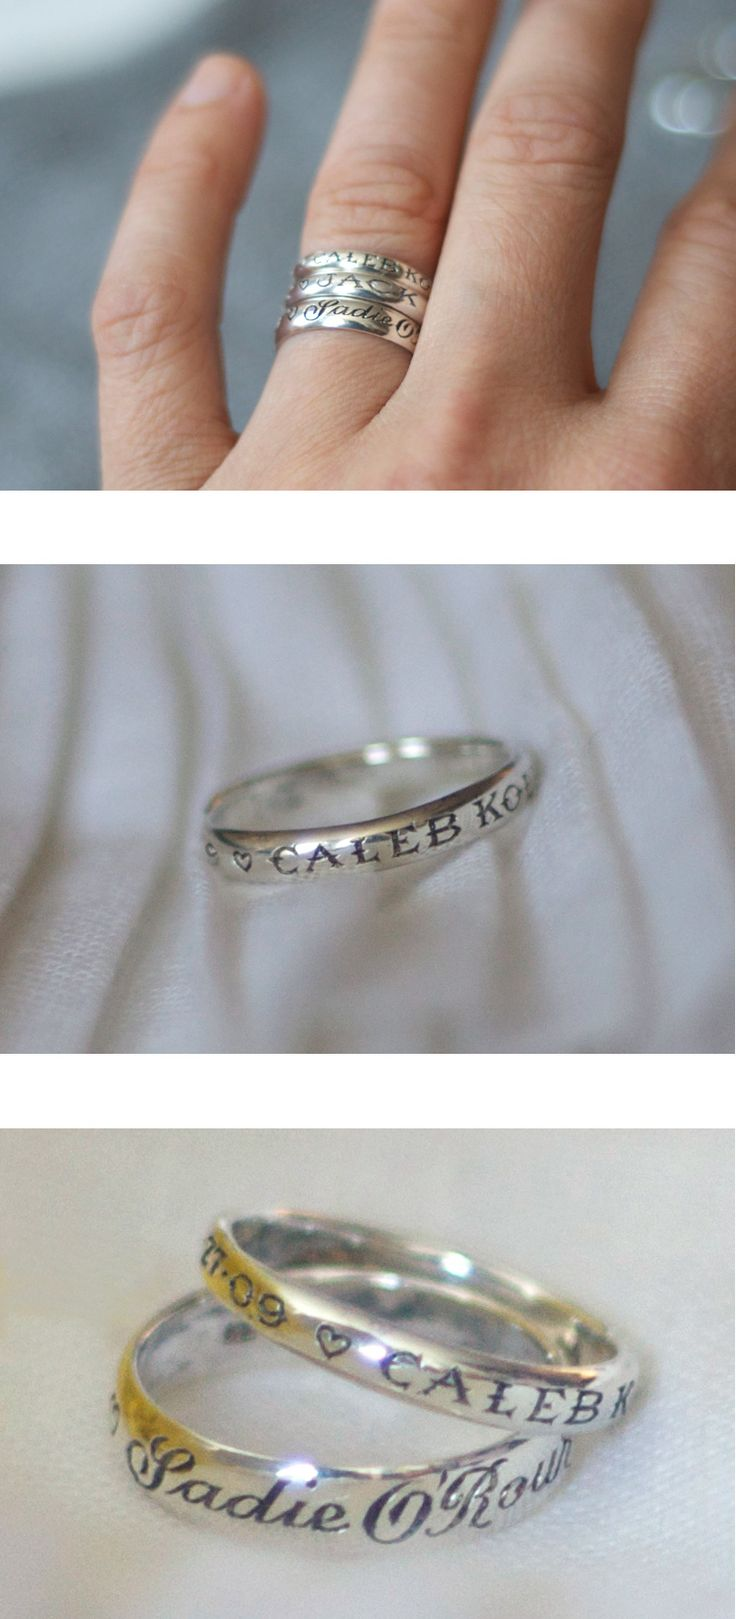 Child's name and date of birth on the ring. Wow, I want!: Baby Names, Mom Rings, Mothers Day Gifts, Gifts Ideas, Mothers Rings, Names Rings, Cute Ideas, Kids Names, Kid Names